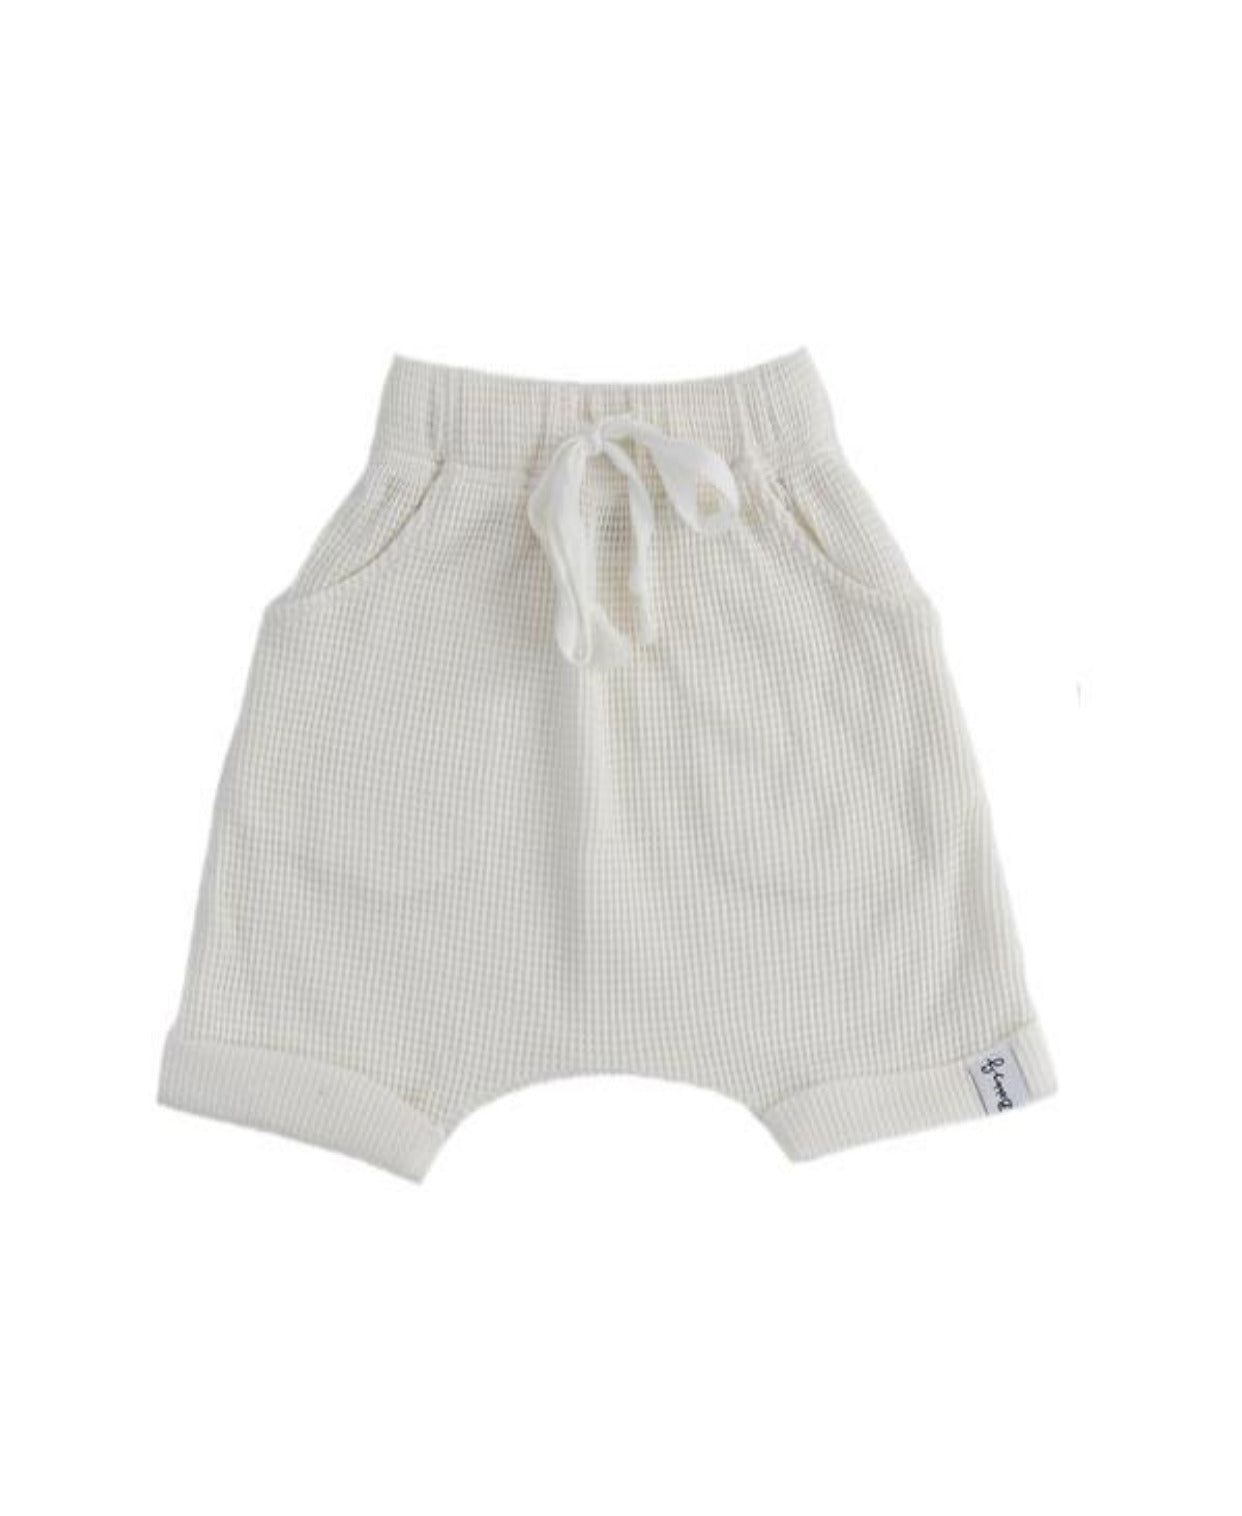 Bobby G Breeze Shorts White